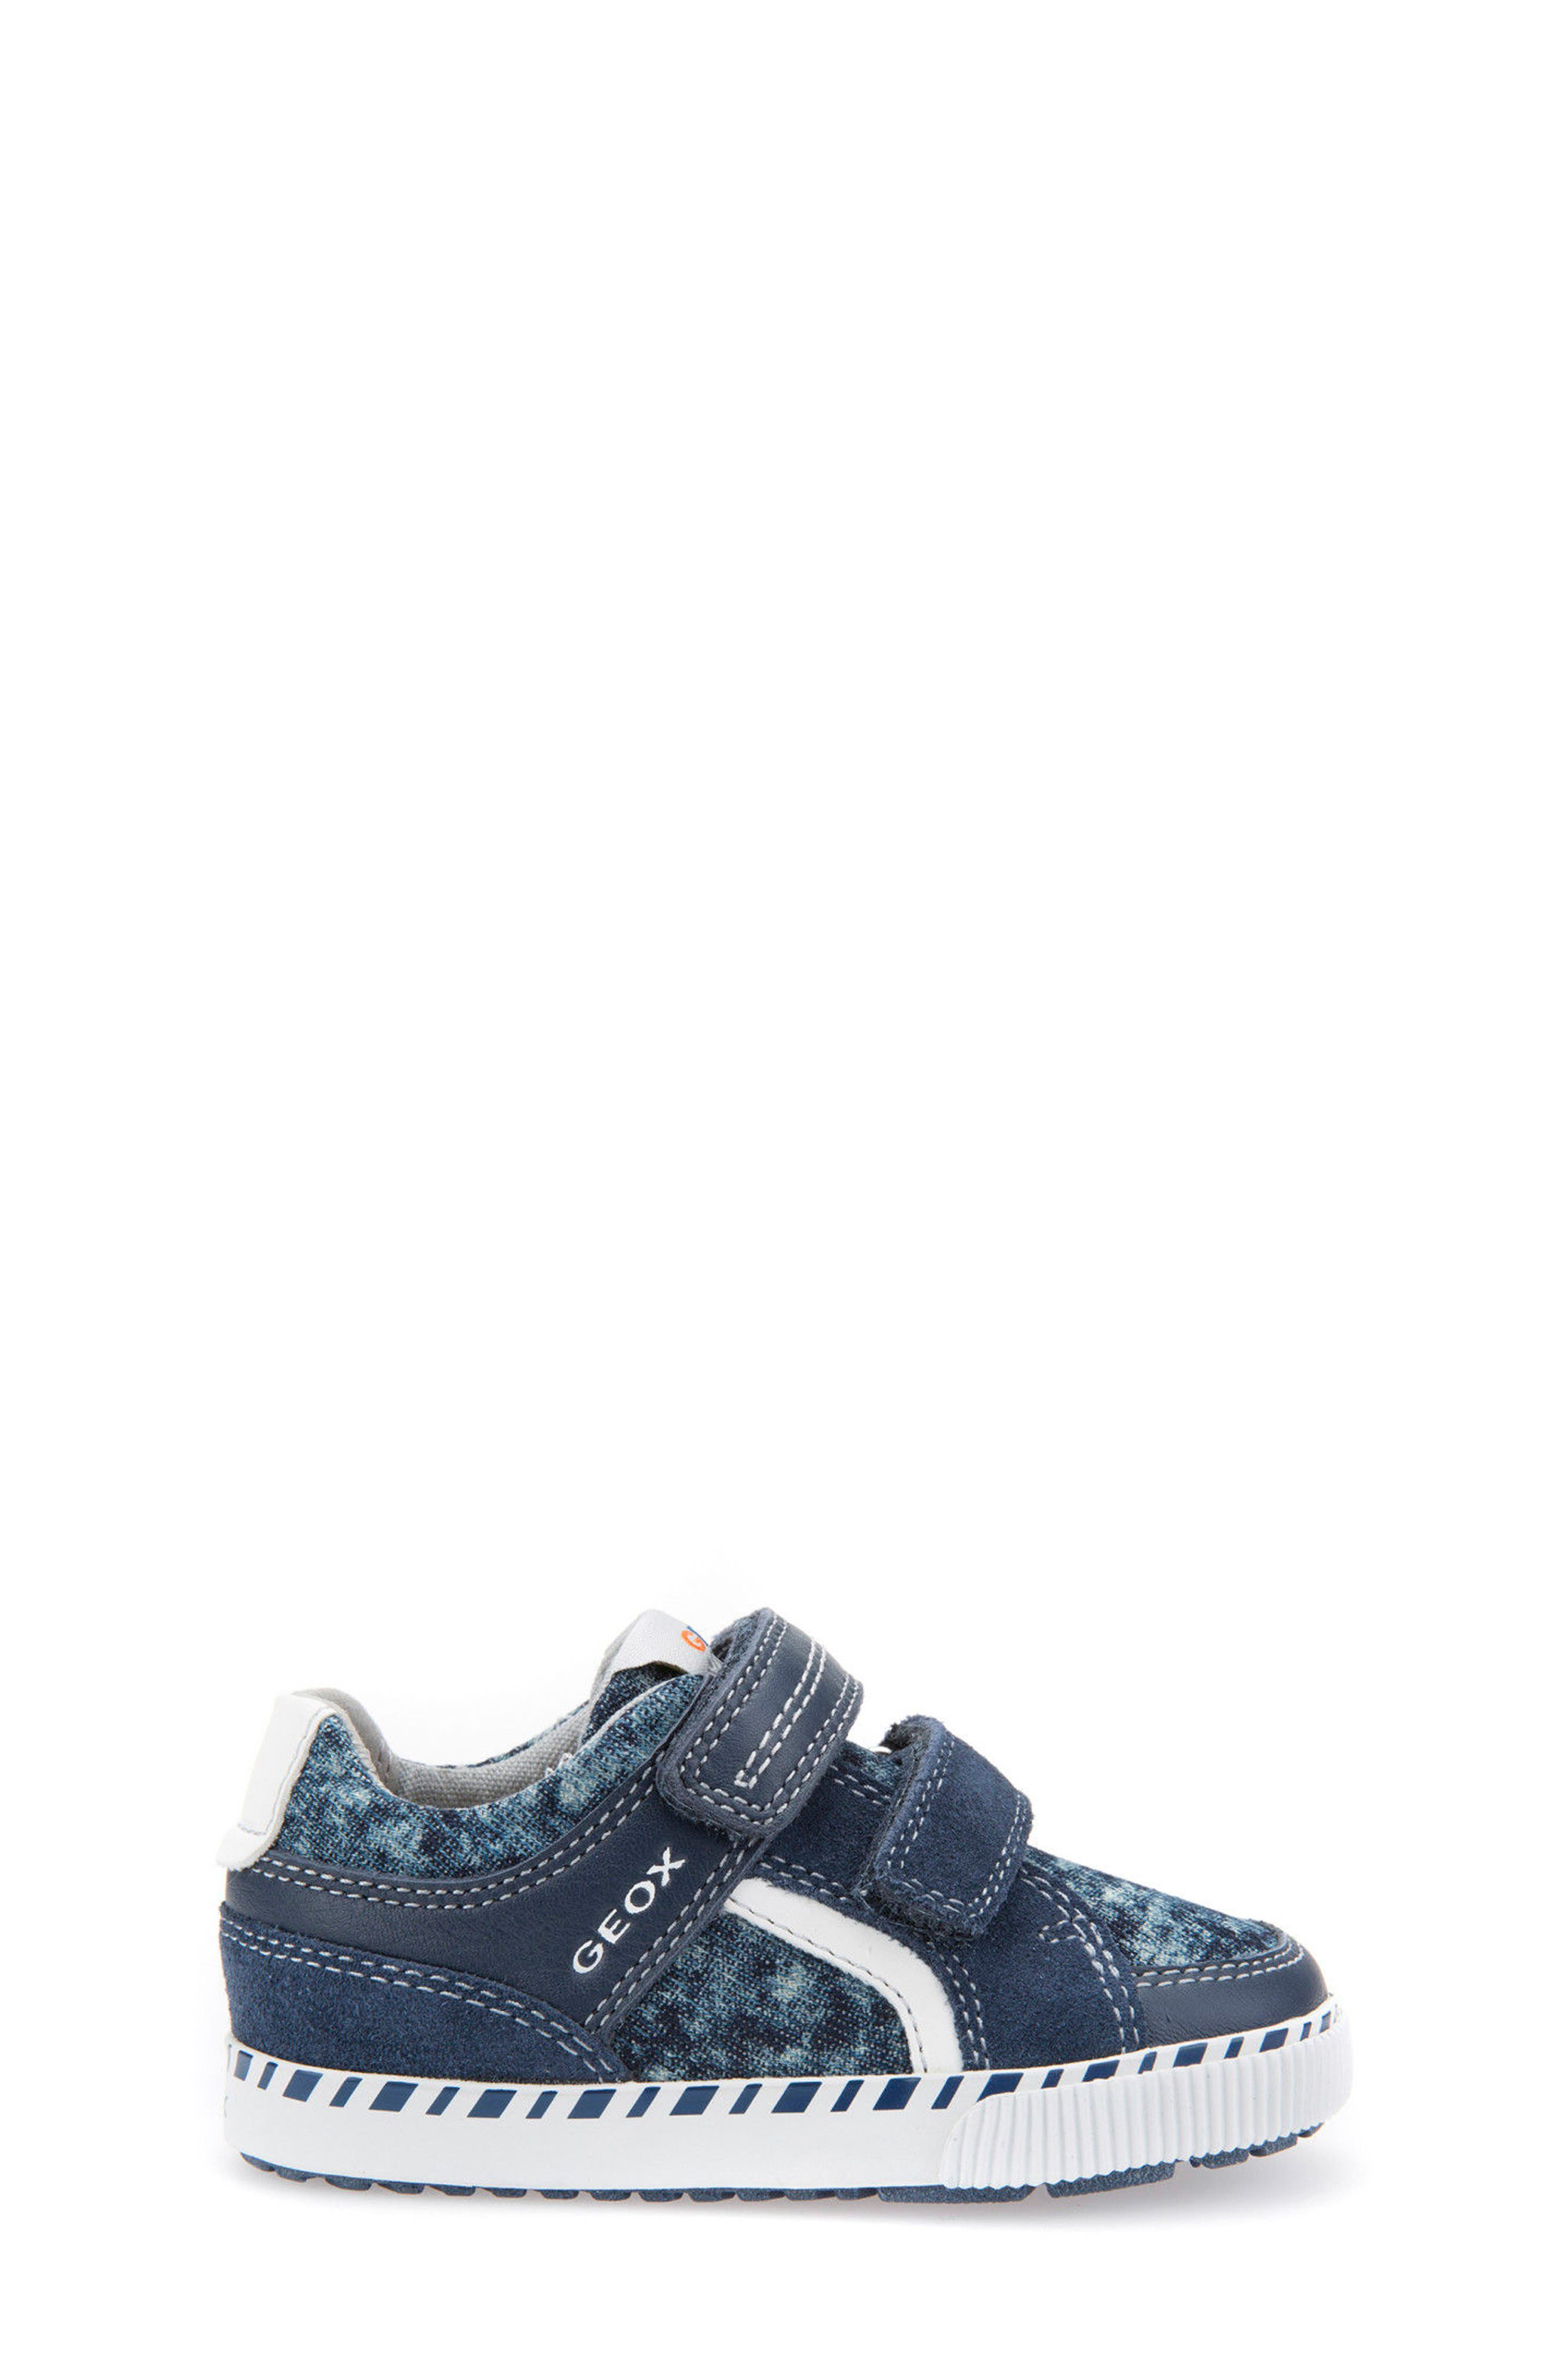 Kilwi Knit Sneaker,                             Alternate thumbnail 3, color,                             NAVY/ WHITE